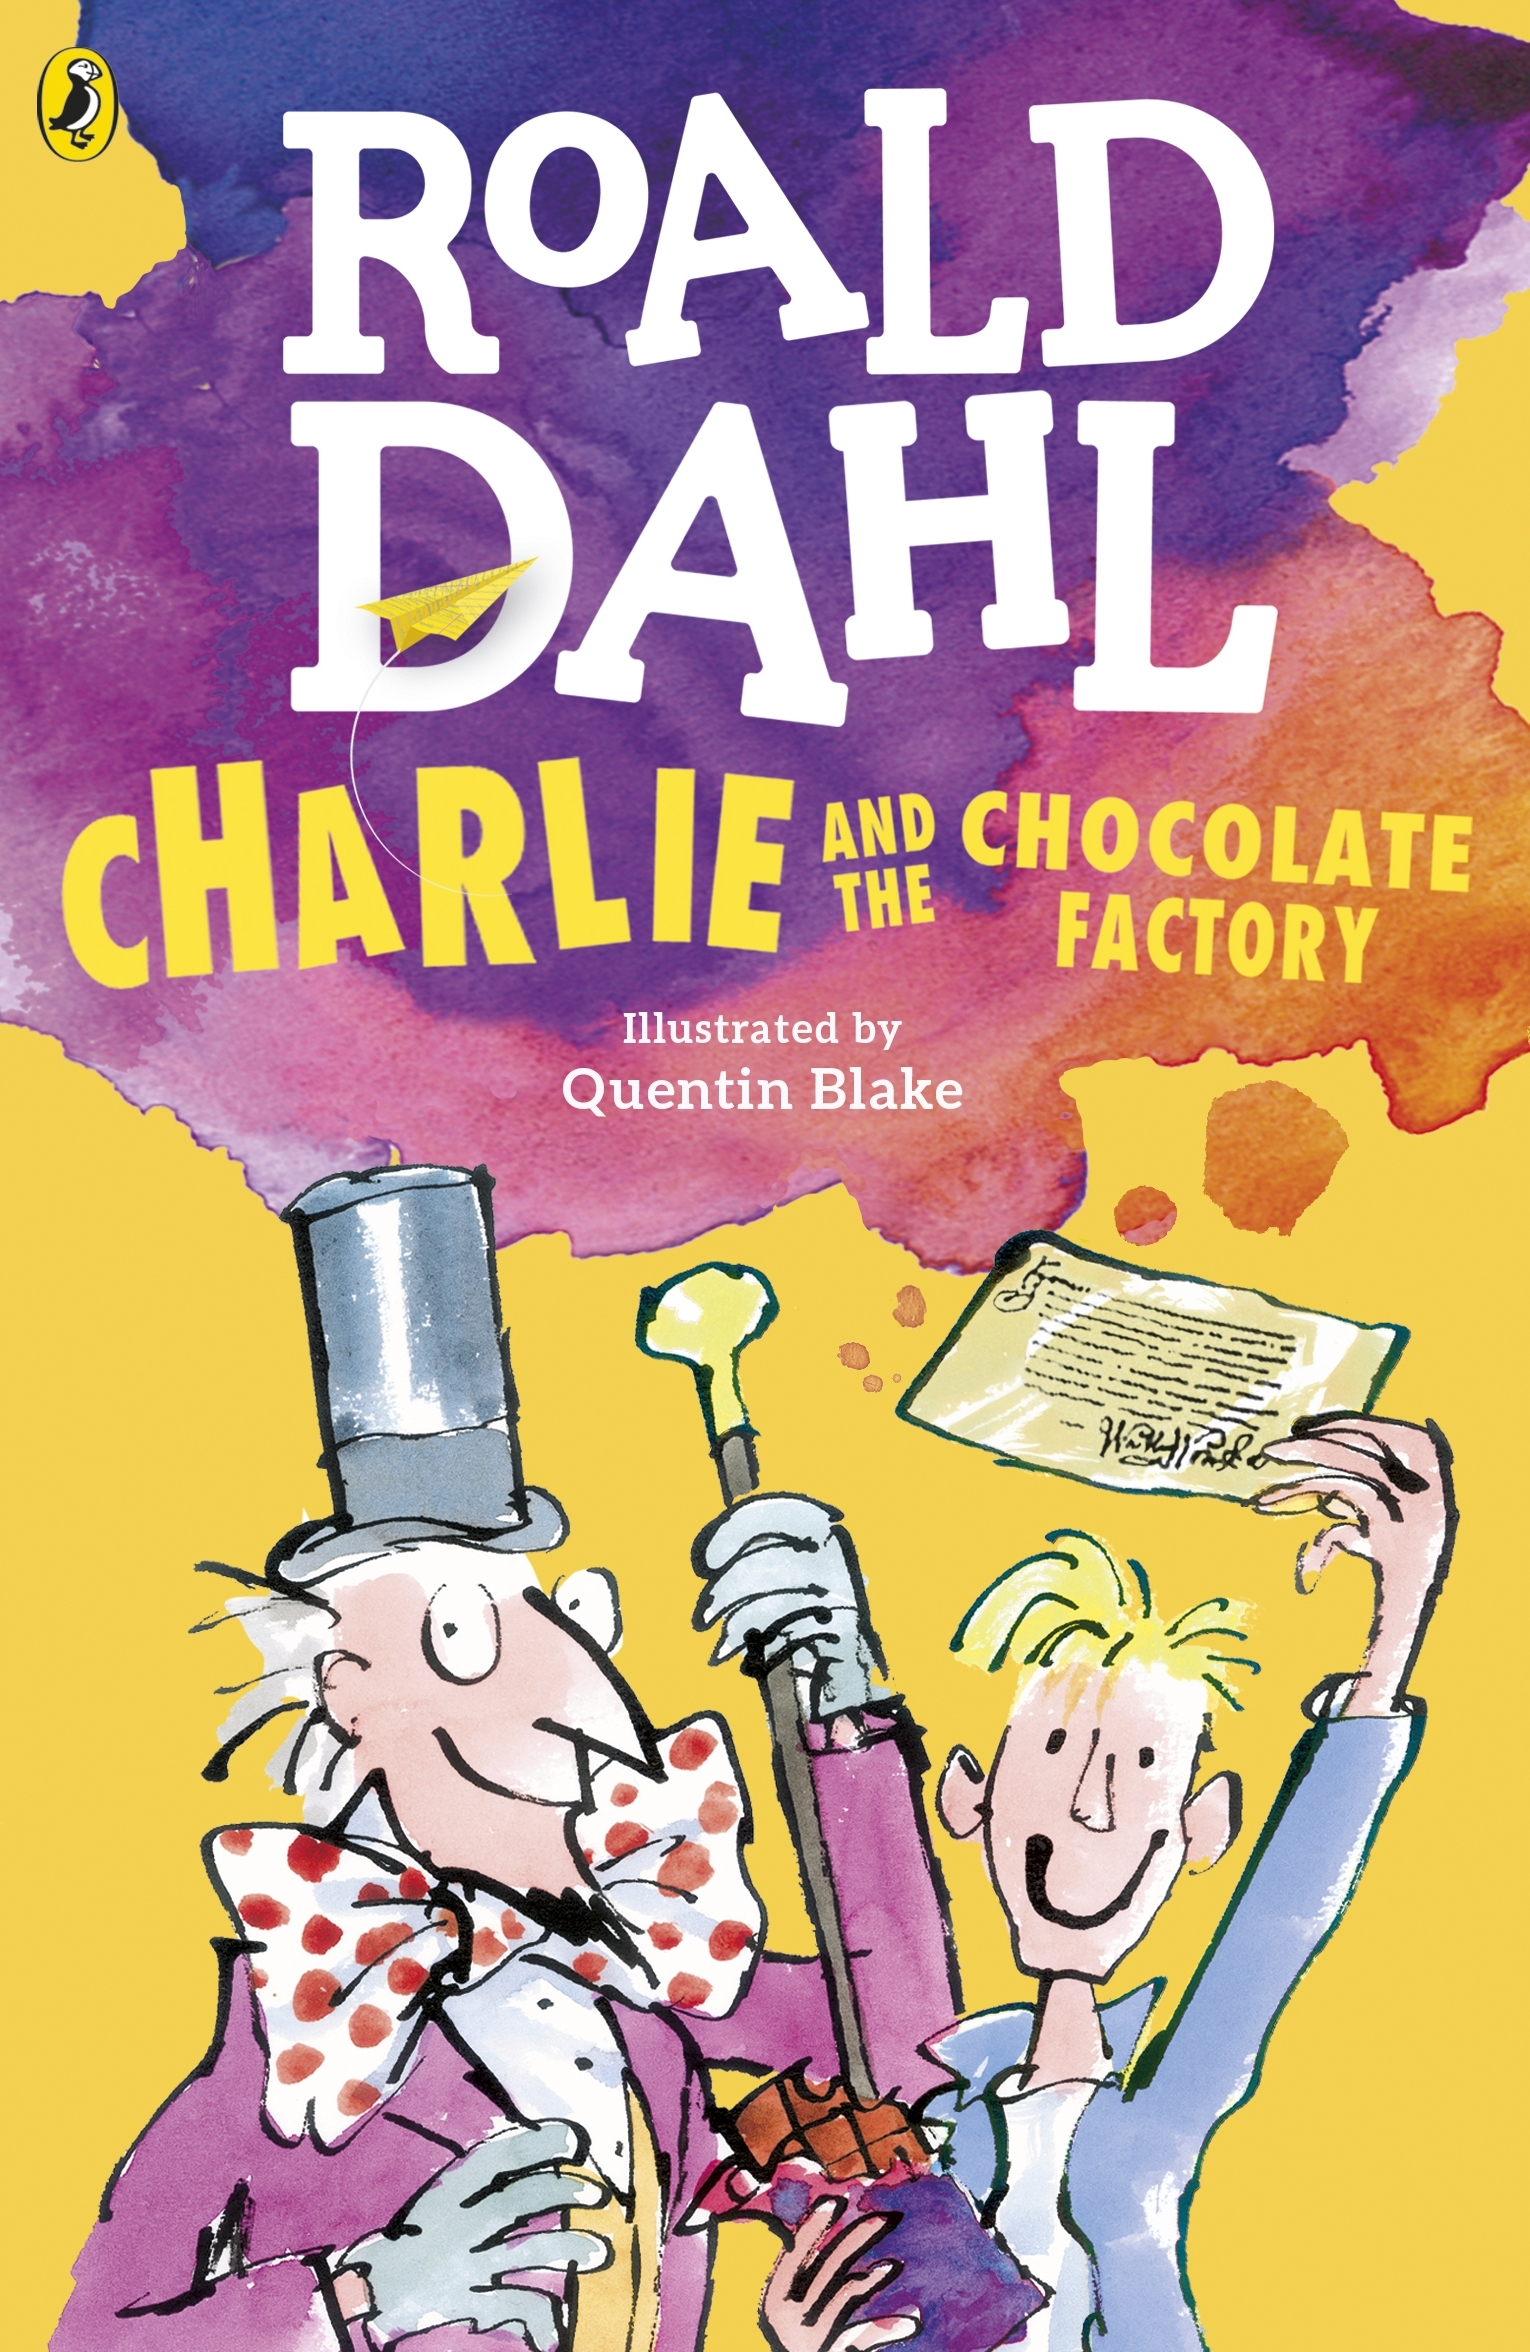 Image result for Charlie and the Chocolate Factory book cover